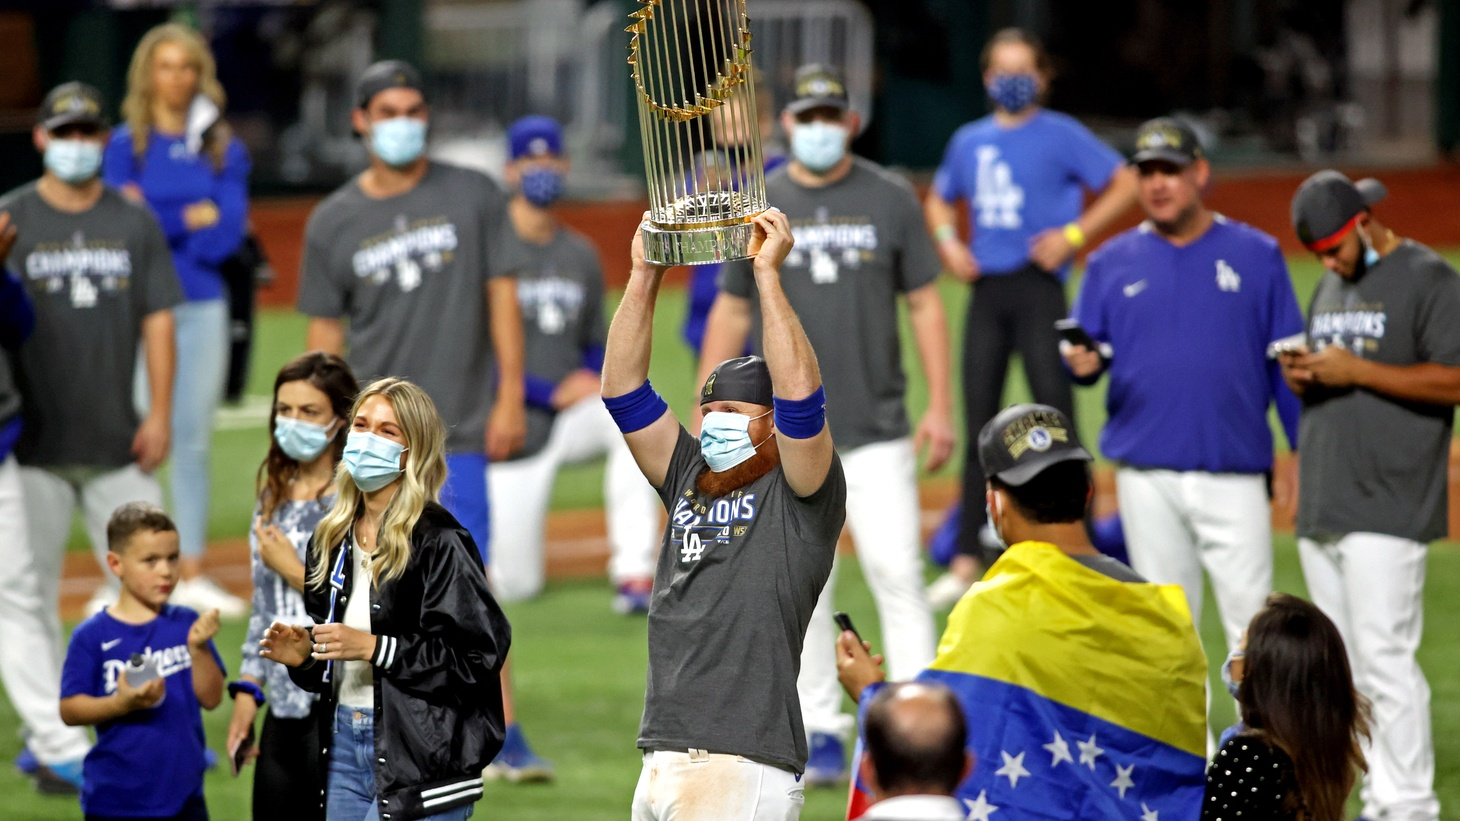 Los Angeles Dodgers third baseman Justin Turner (10) celebrates with the Commissioner's Trophy after the Los Angeles Dodgers beat the Tampa Bay Rays to win the World Series in game six of the 2020 World Series at Globe Life Field. Mandatory